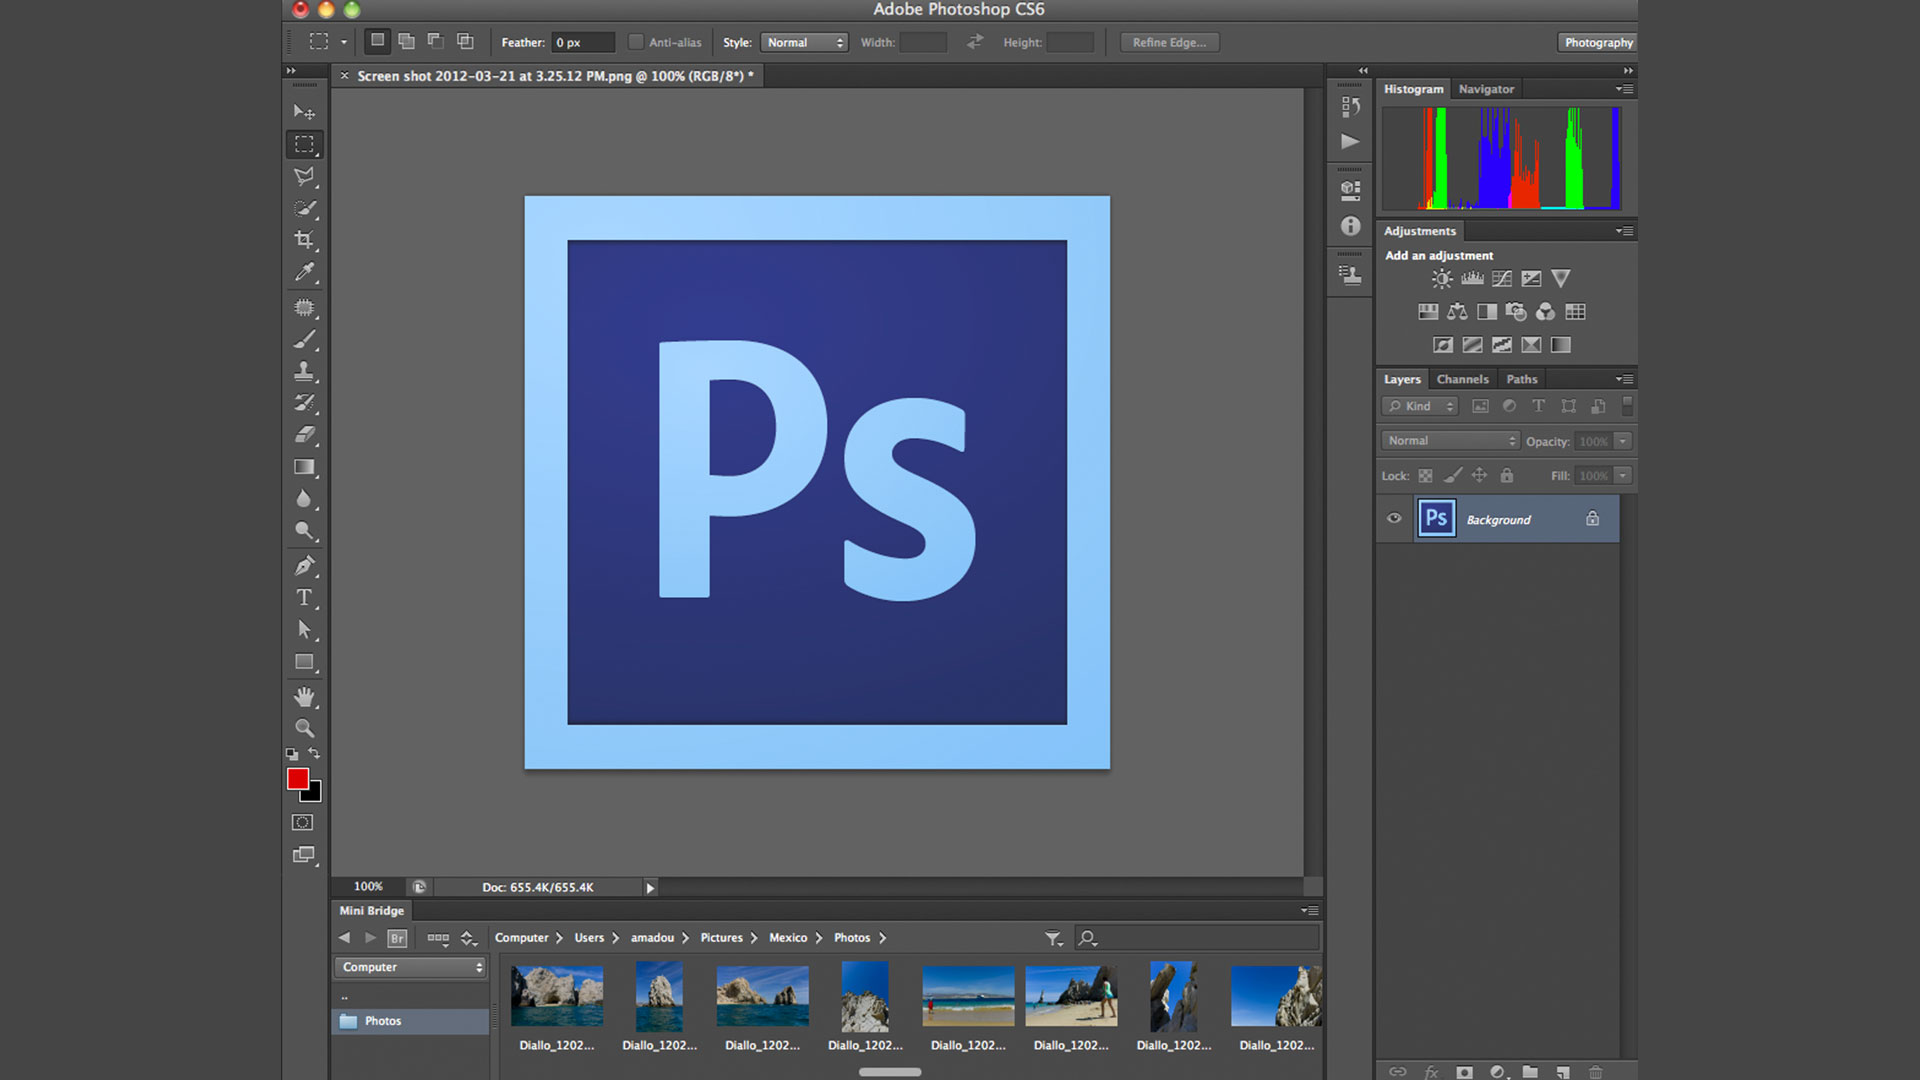 Adobe Photoshop CS6 One on One Fundamentals – 2 – Getting Around – 2-2 The dark vs- the light interface